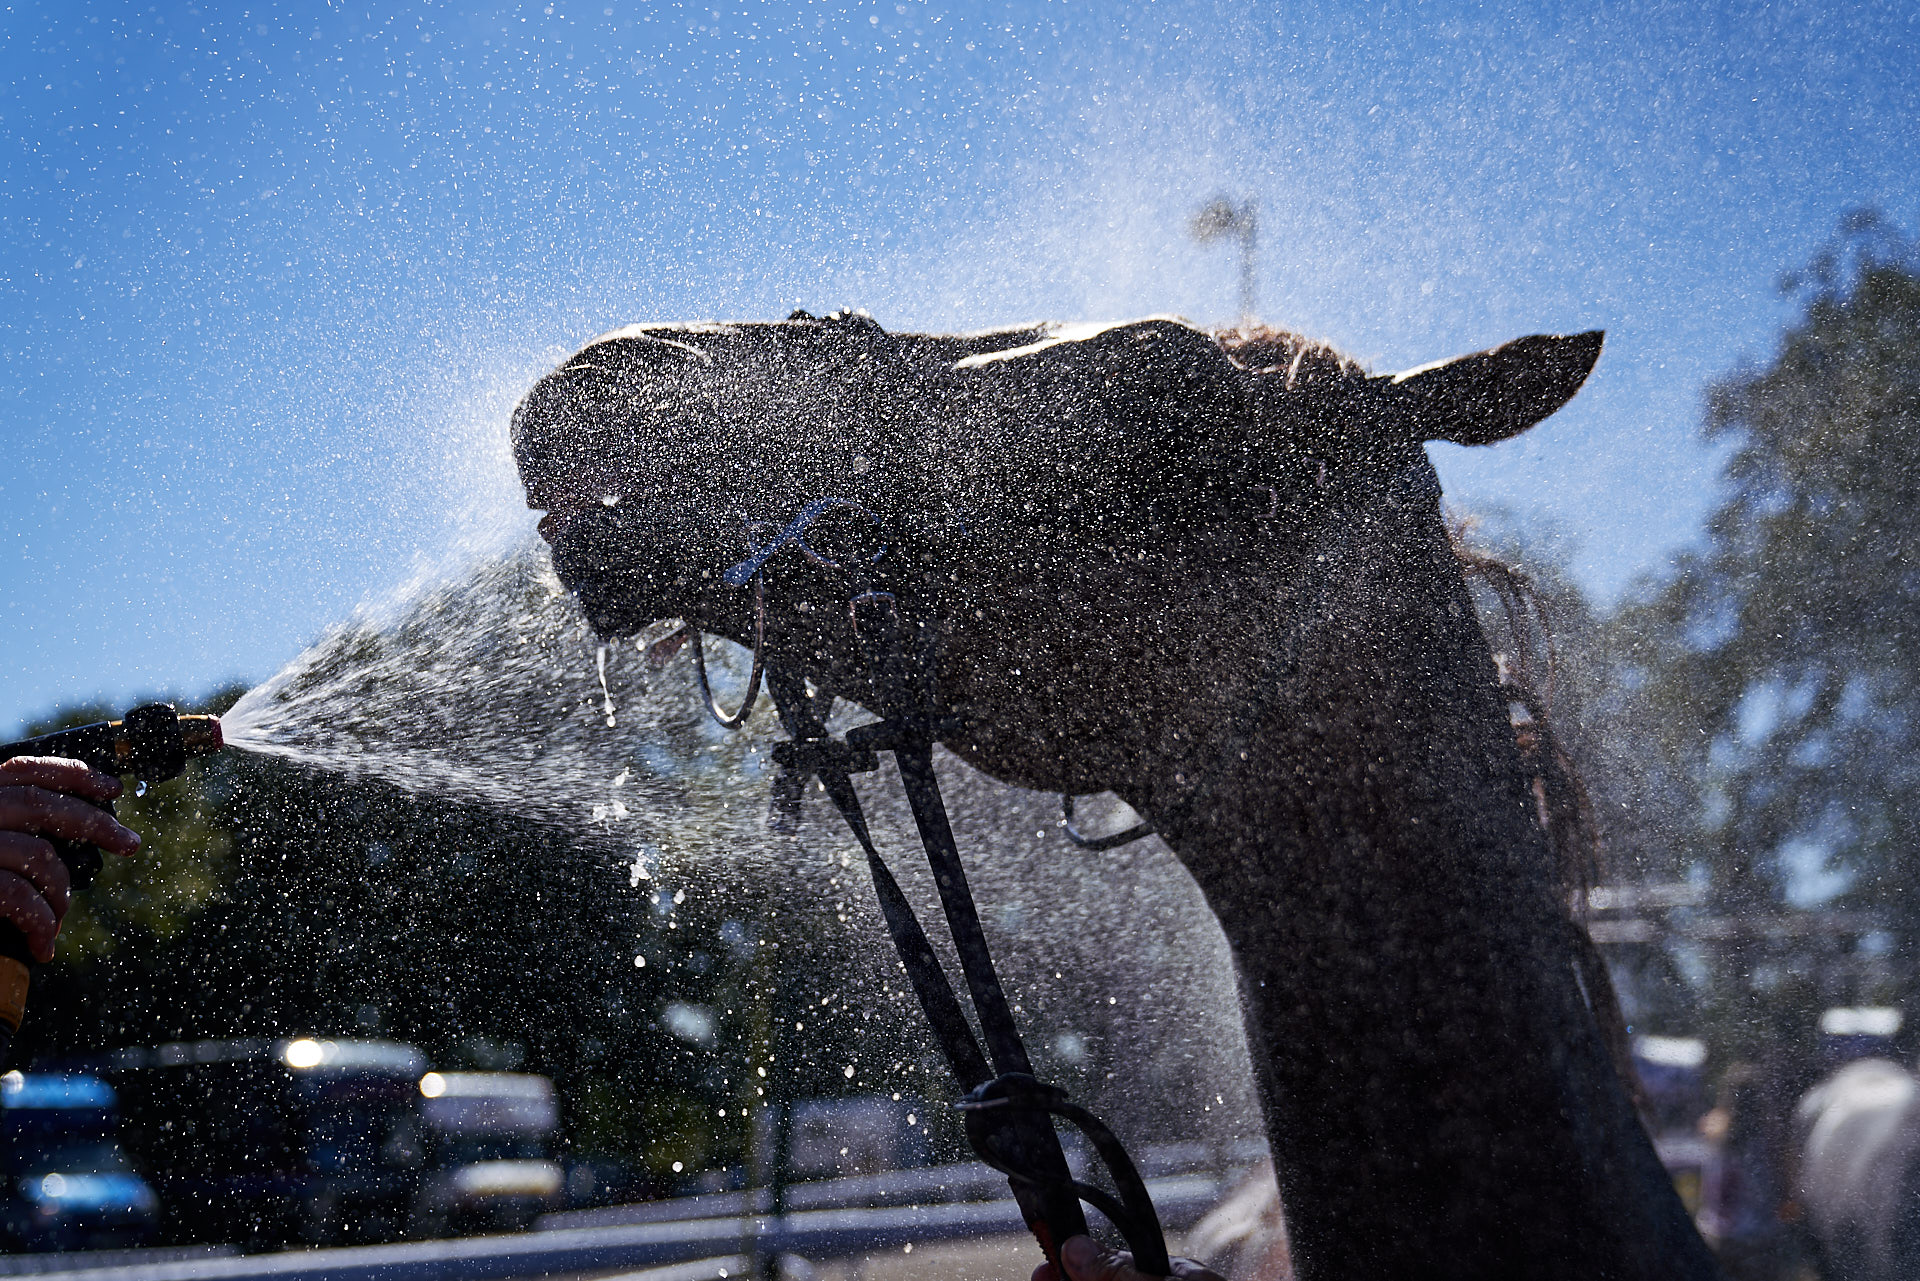 Horse is washed down after a race at the Qatar Goodwood Festival 2018